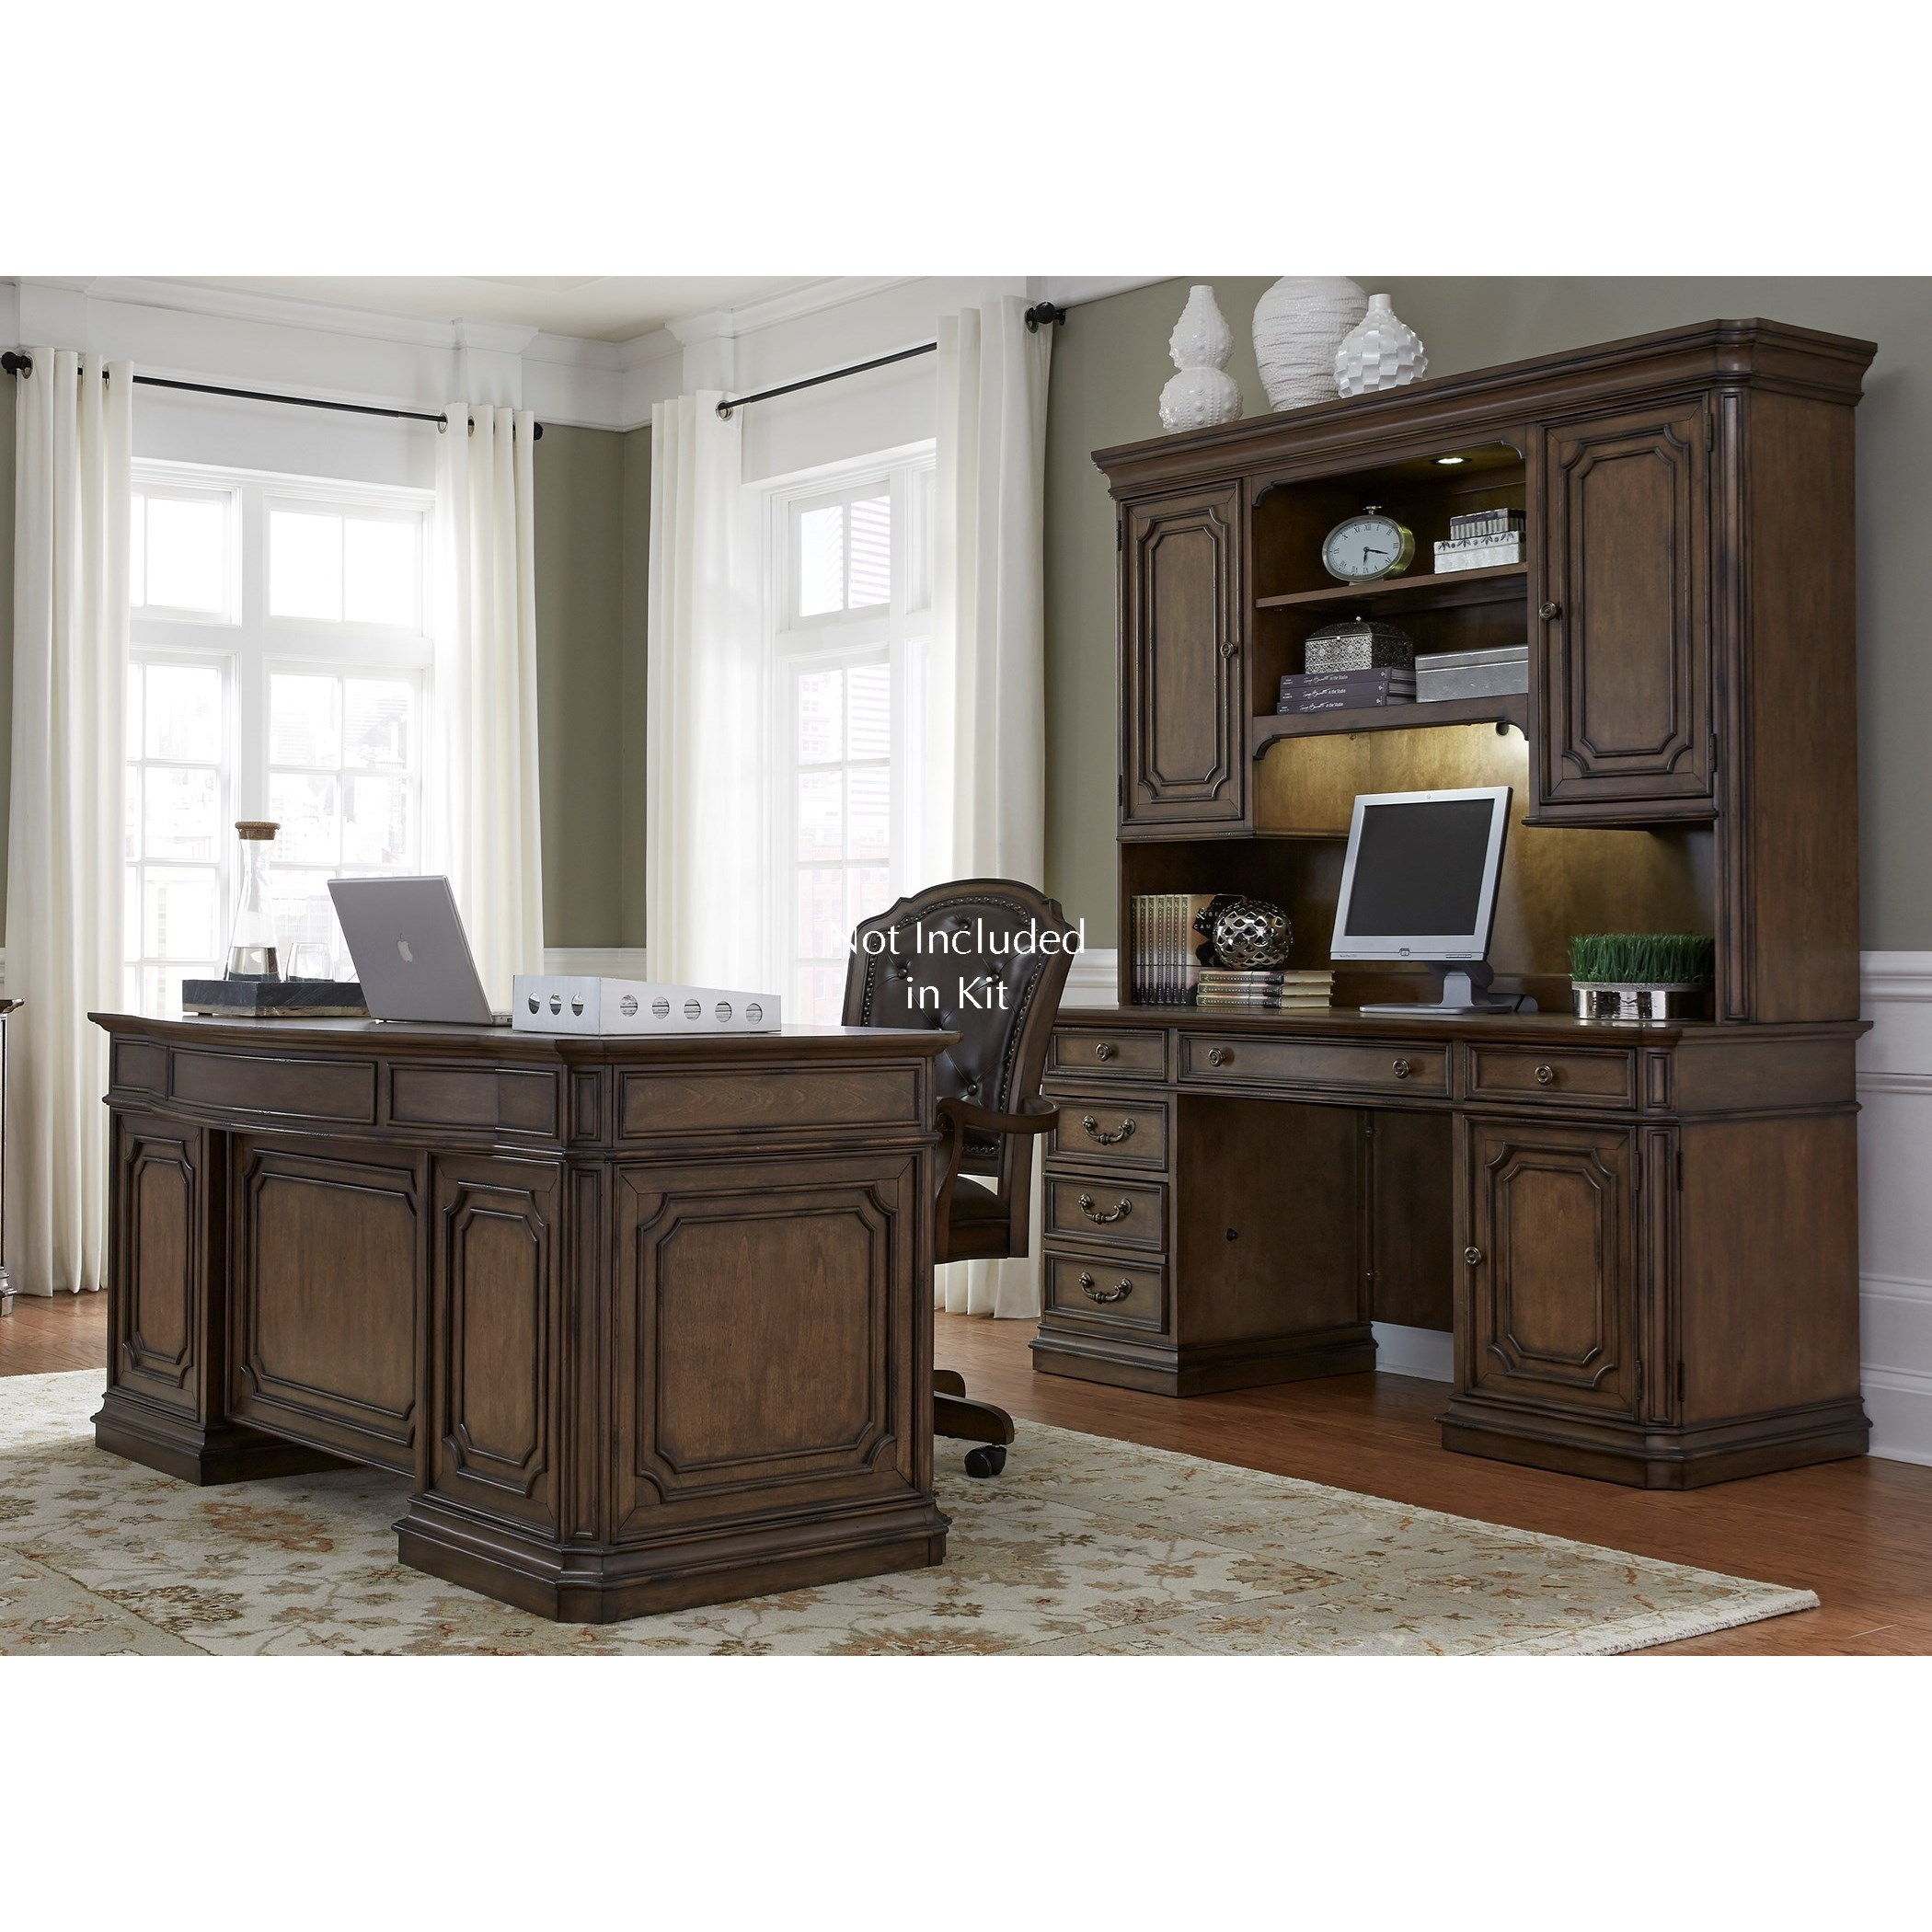 Amelia Home Office 5 Piece Jr Executive Set  by Liberty Furniture at Northeast Factory Direct